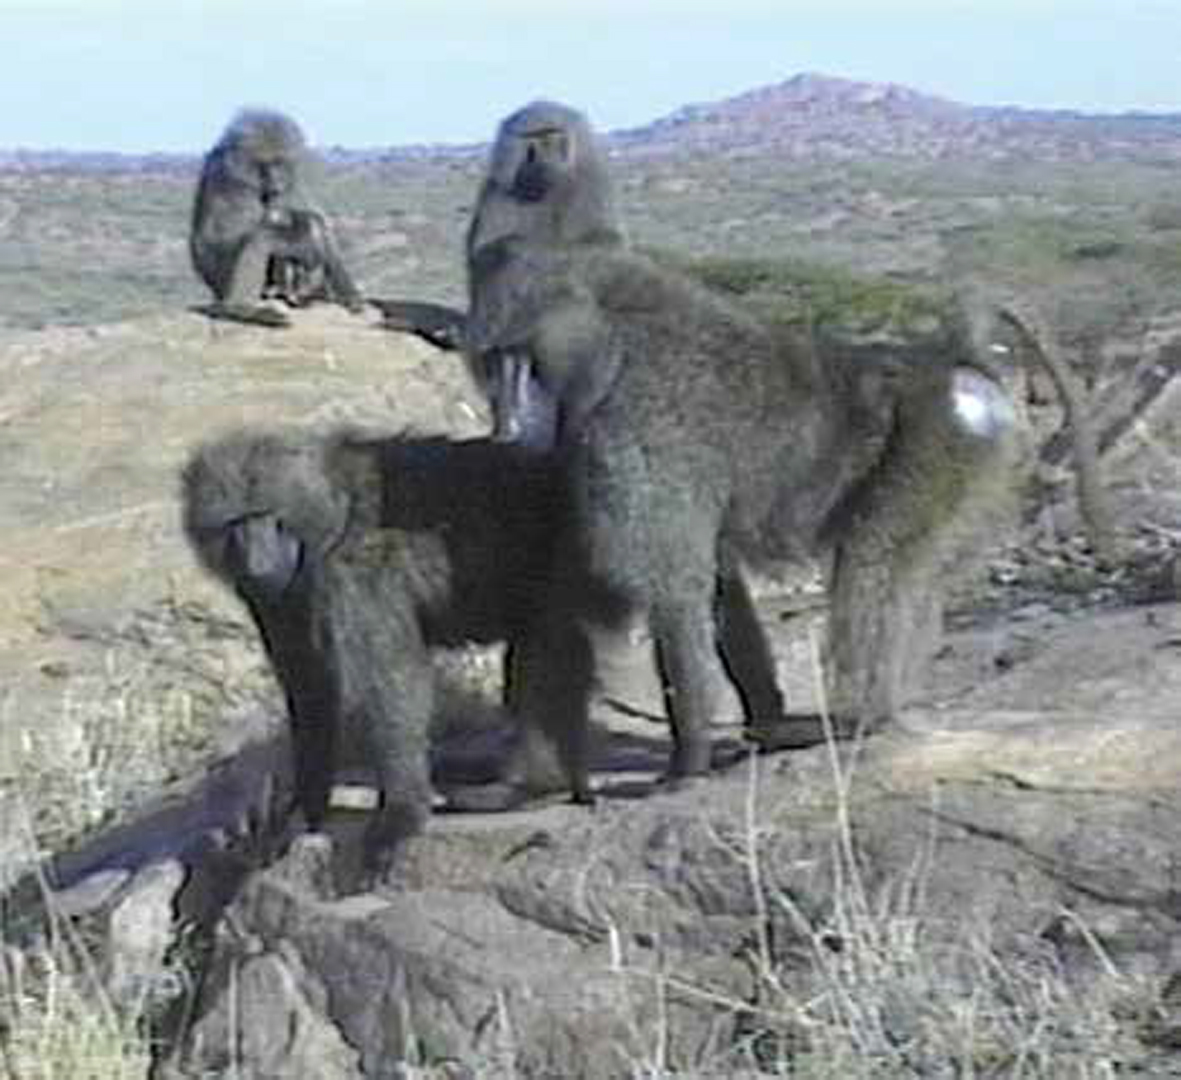 ©, Rachel Mayeri, Primate Cinema: Baboons as Friends